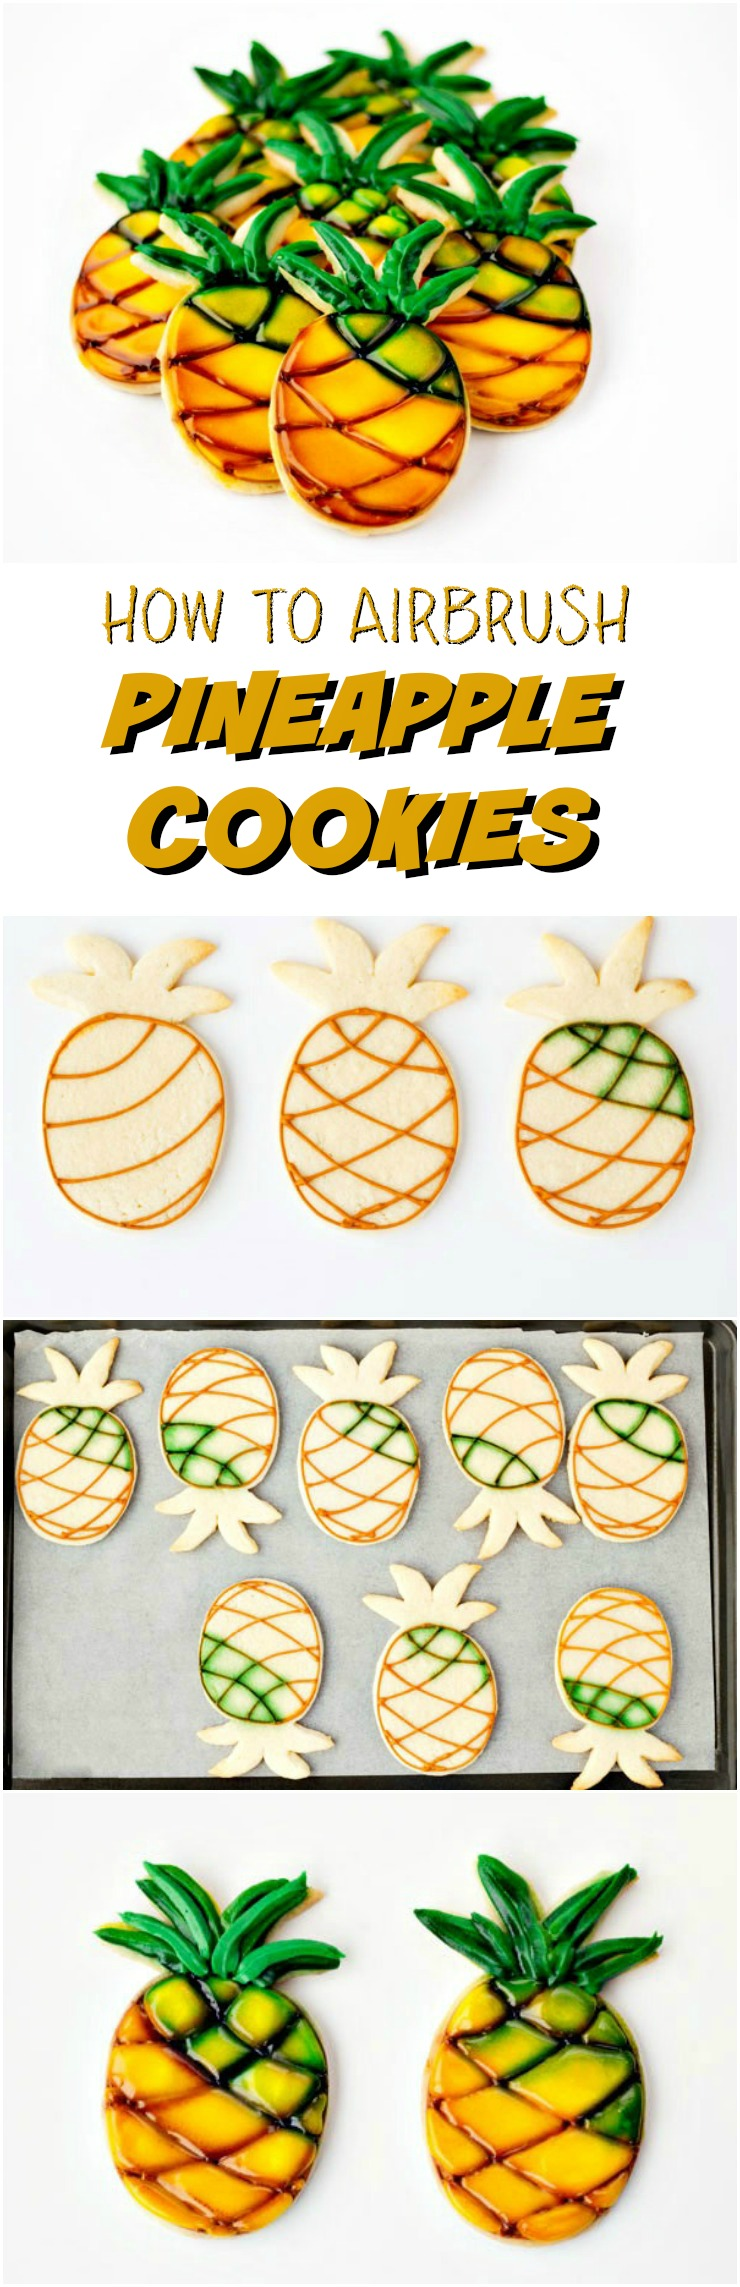 How to Make and Airbrush Pineapple Cookies via www.thebearfootbaker.com